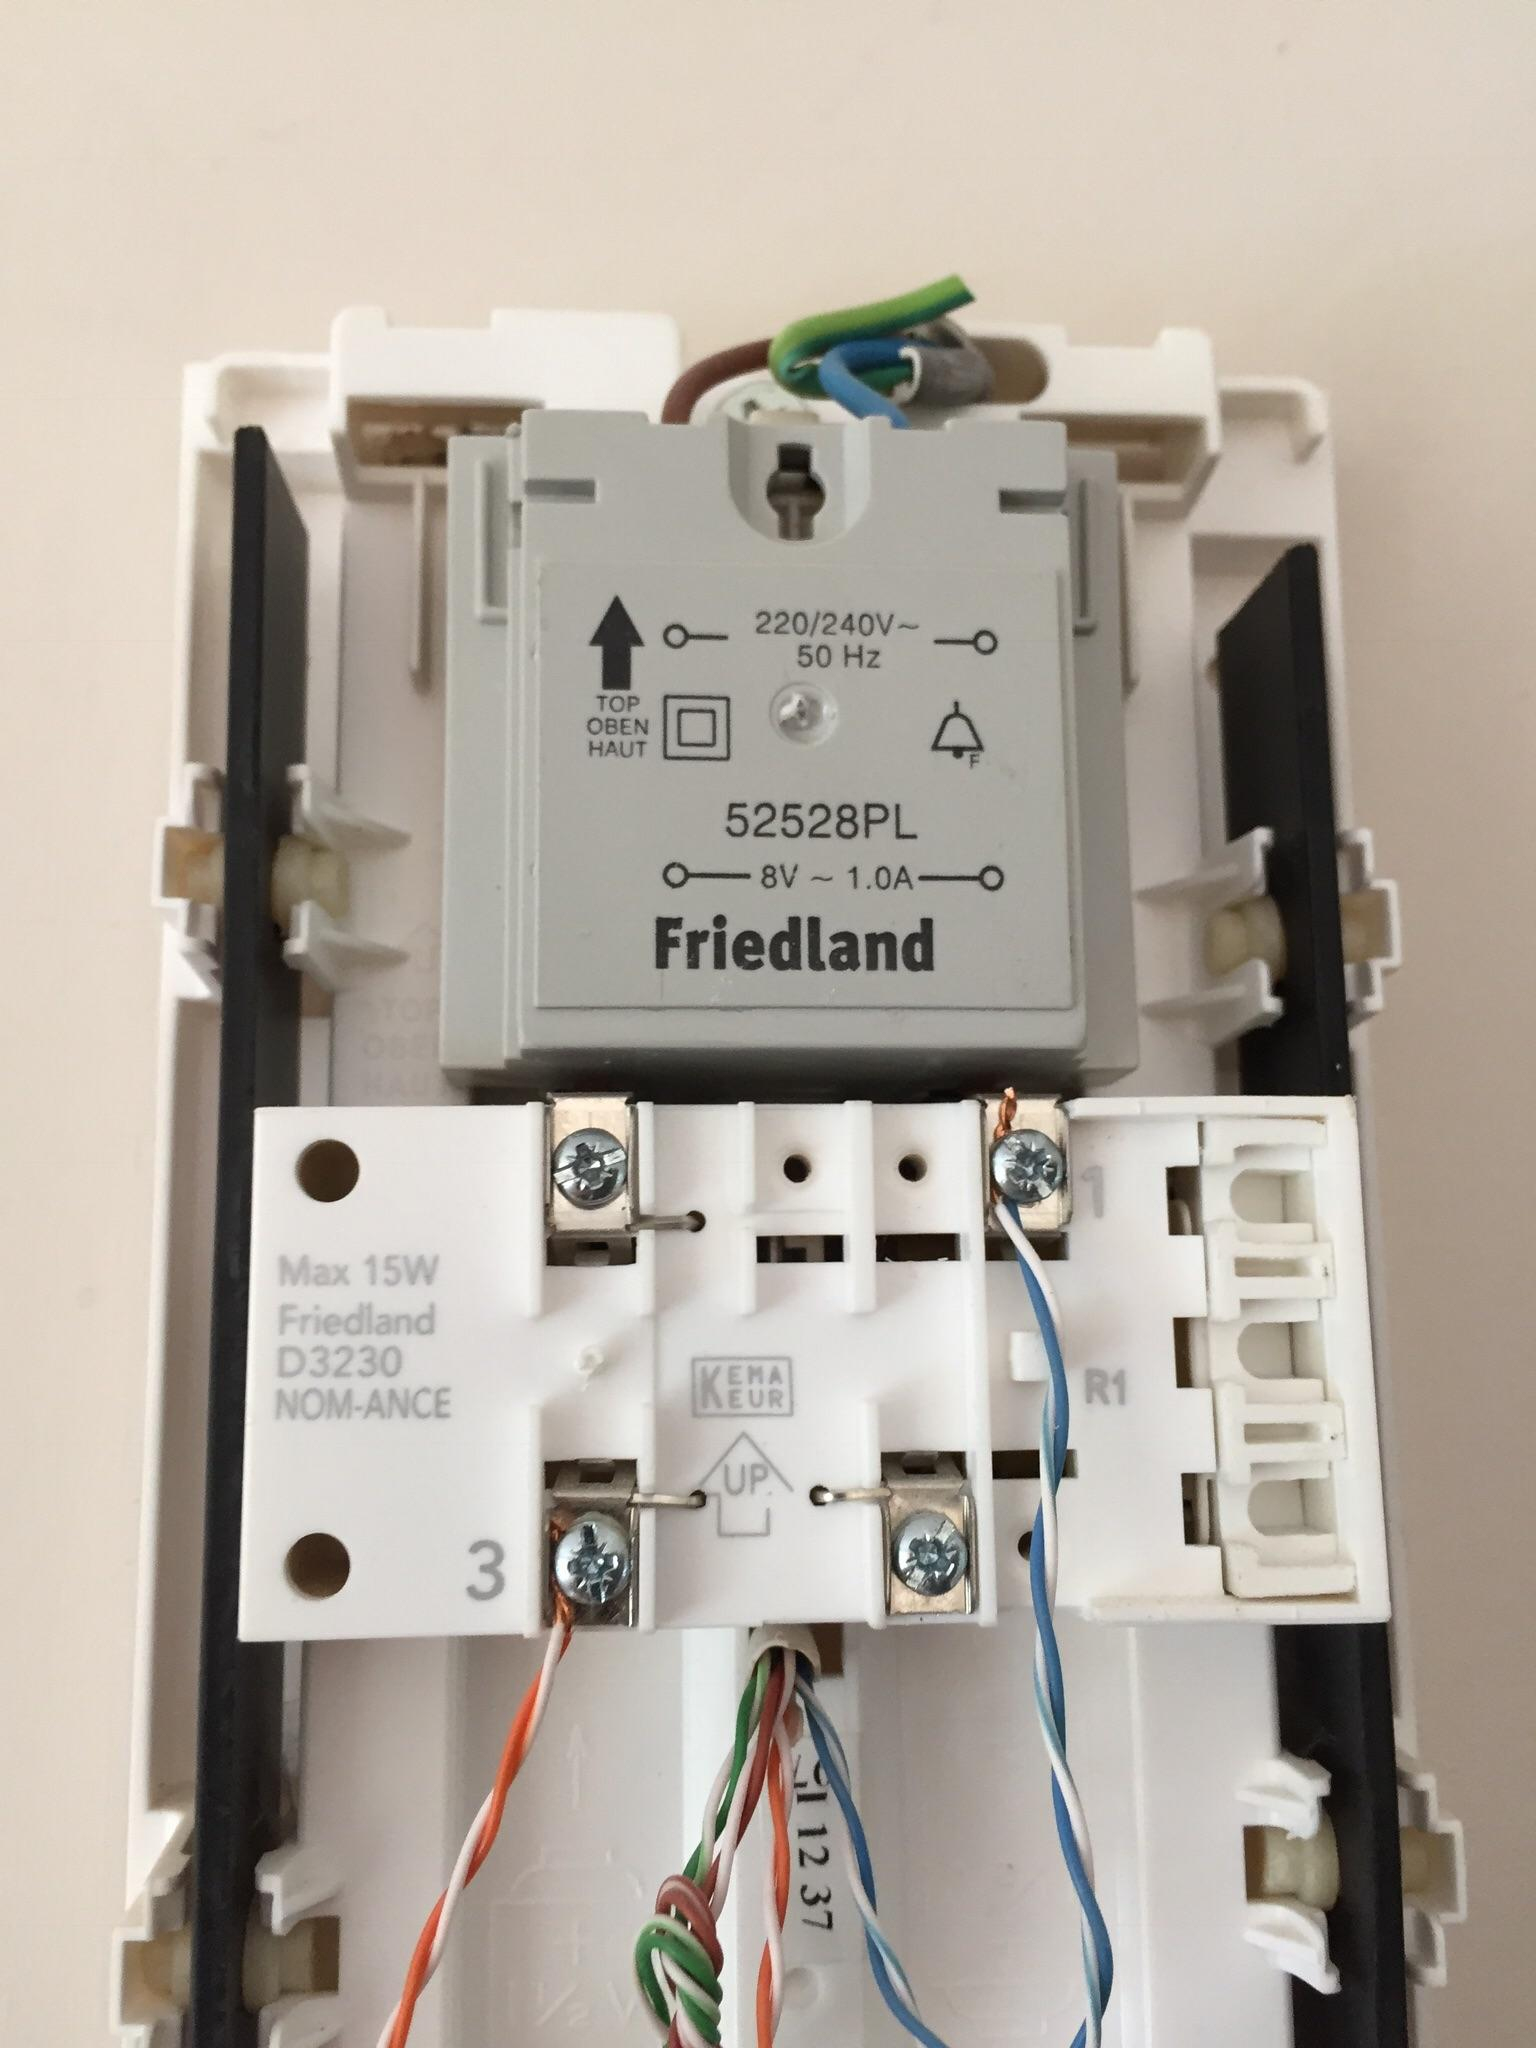 Installing Nest Hello Uk - What Are My Options With The Following - Nest Hello Wiring Diagram 4 Wire